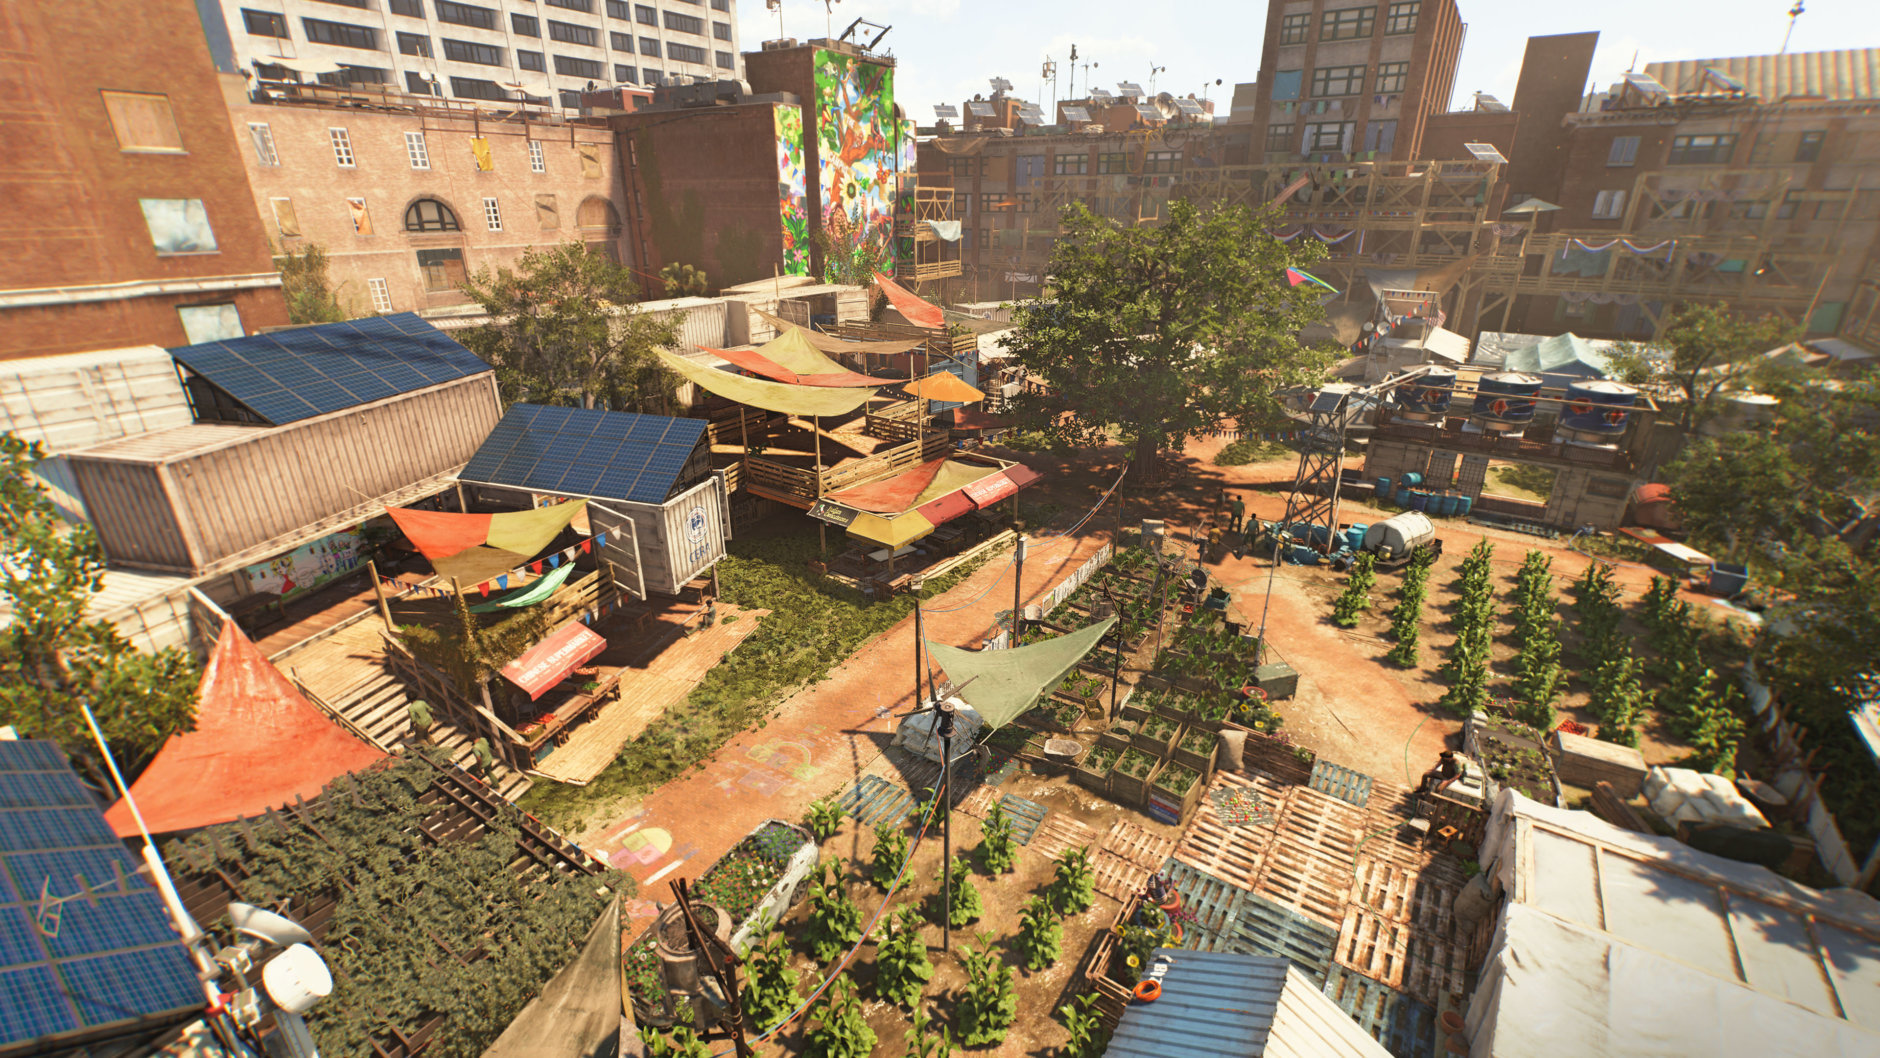 One of the settlements players will help rebuild in Division 2. (Courtesy Ubisoft/Massive)